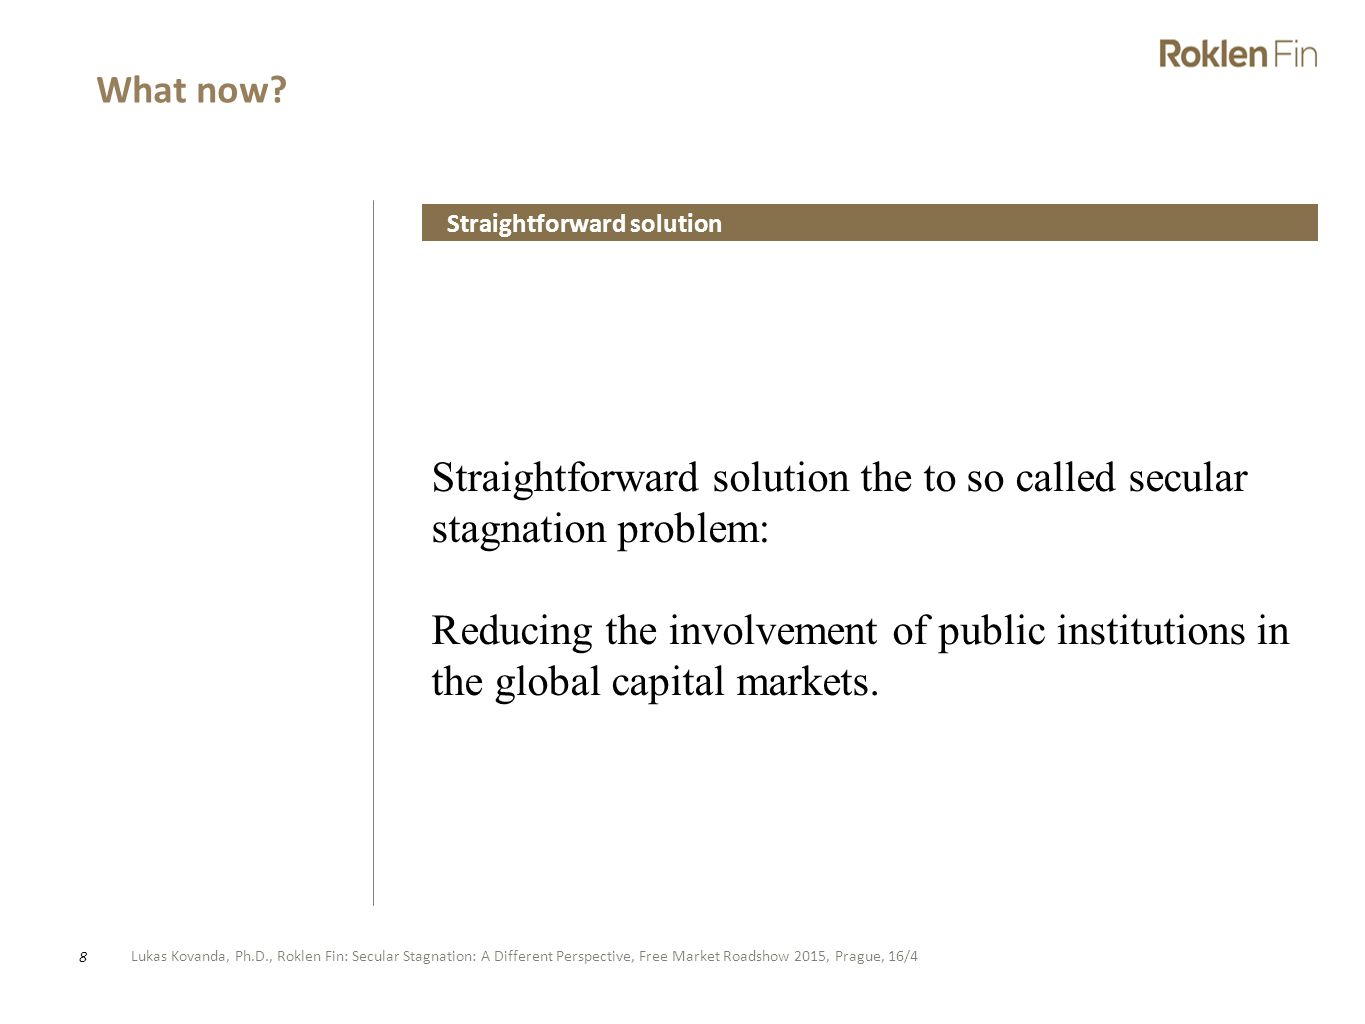 Lukas Kovanda, Ph.D., Roklen Fin: Secular Stagnation: A Different Perspective, Free Market Roadshow 2015, Prague, 16/4 8 Straightforward solution the to so called secular stagnation problem: Reducing the involvement of public institutions in the global capital markets.